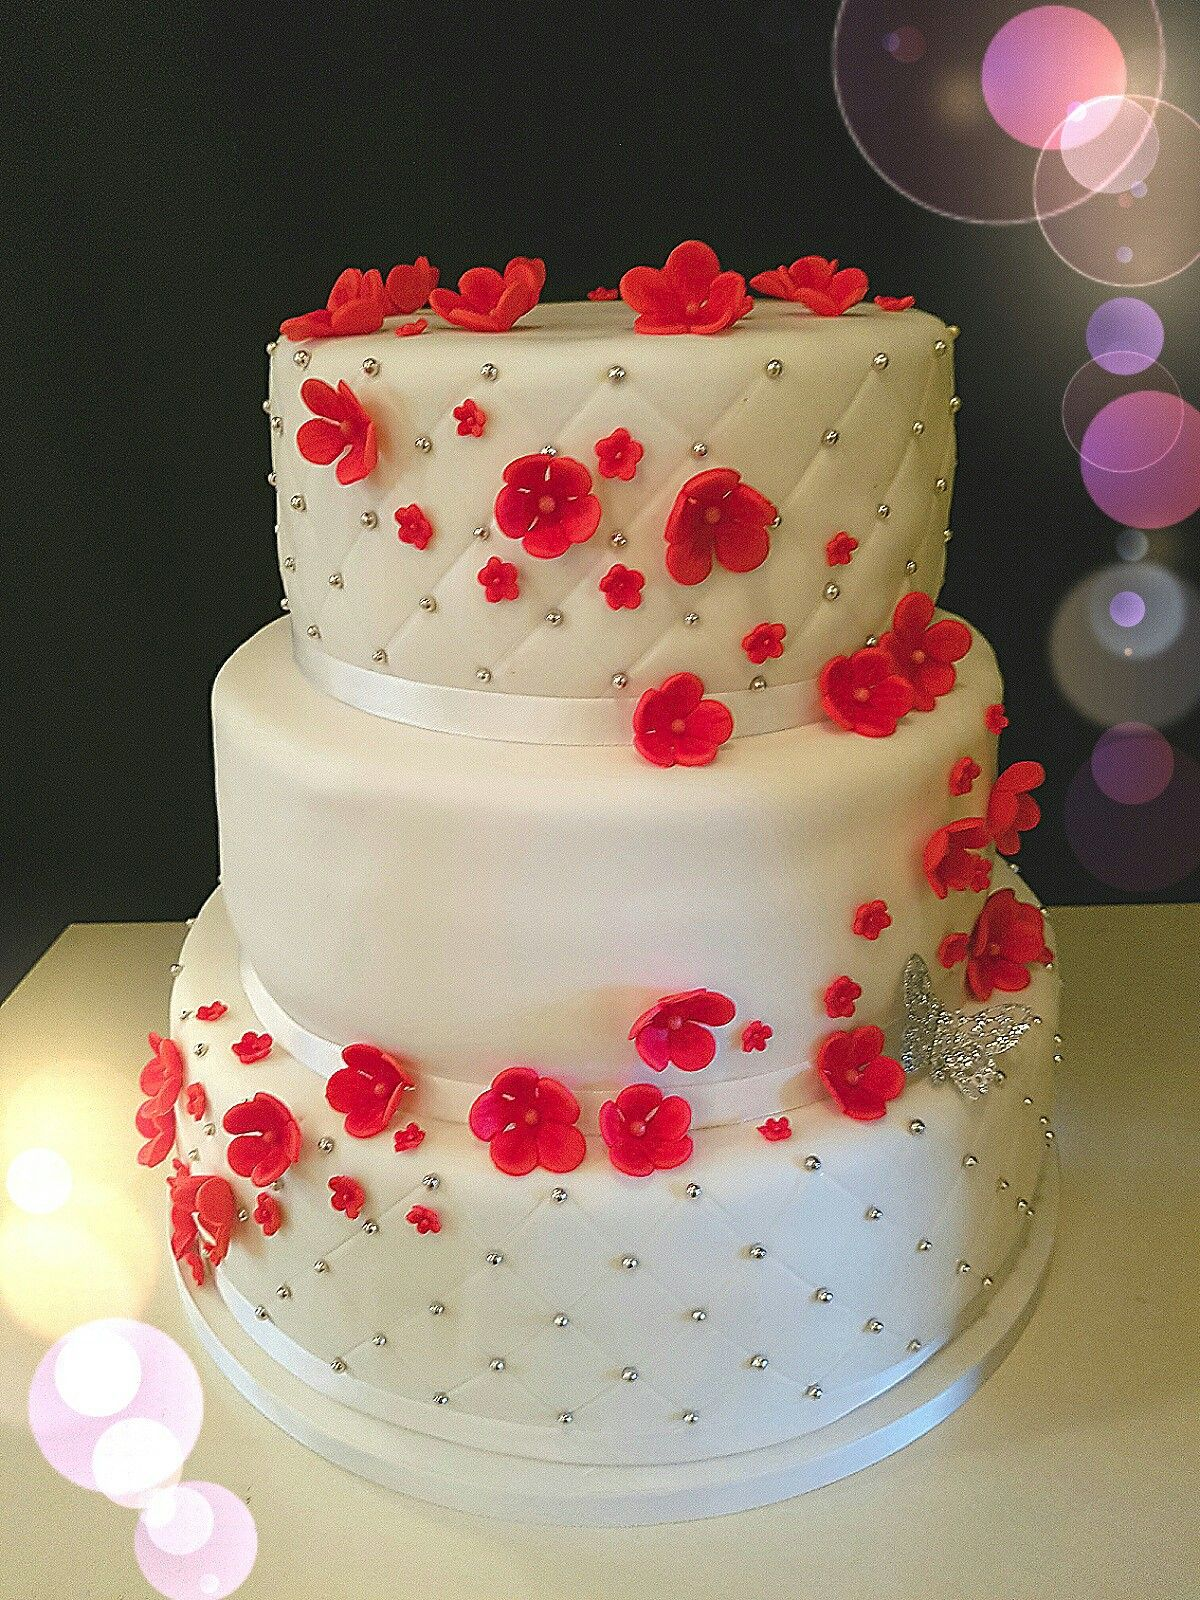 Weddingcake with red flowers and silver butterfly bruidtaart met